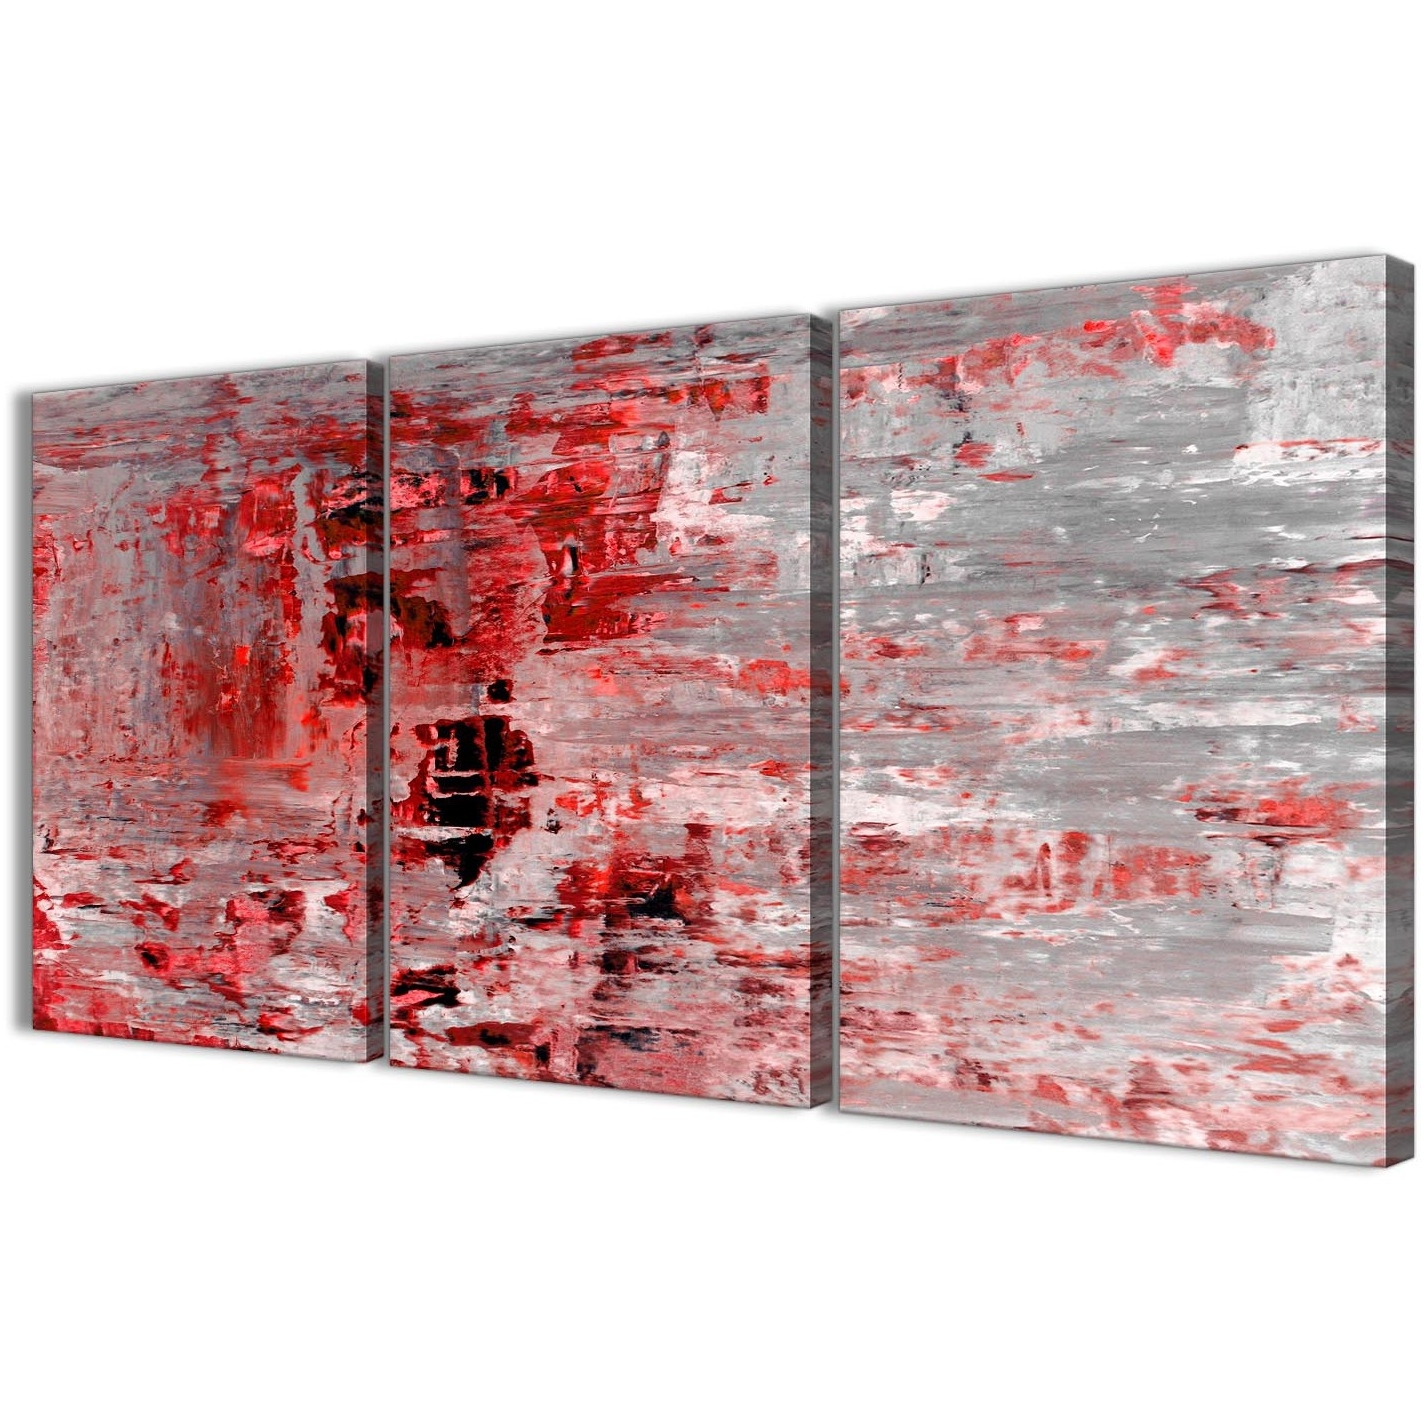 Red Wall Art Throughout Fashionable 3 Piece Red Grey Painting Living Room Canvas Wall Art Decor (View 5 of 15)